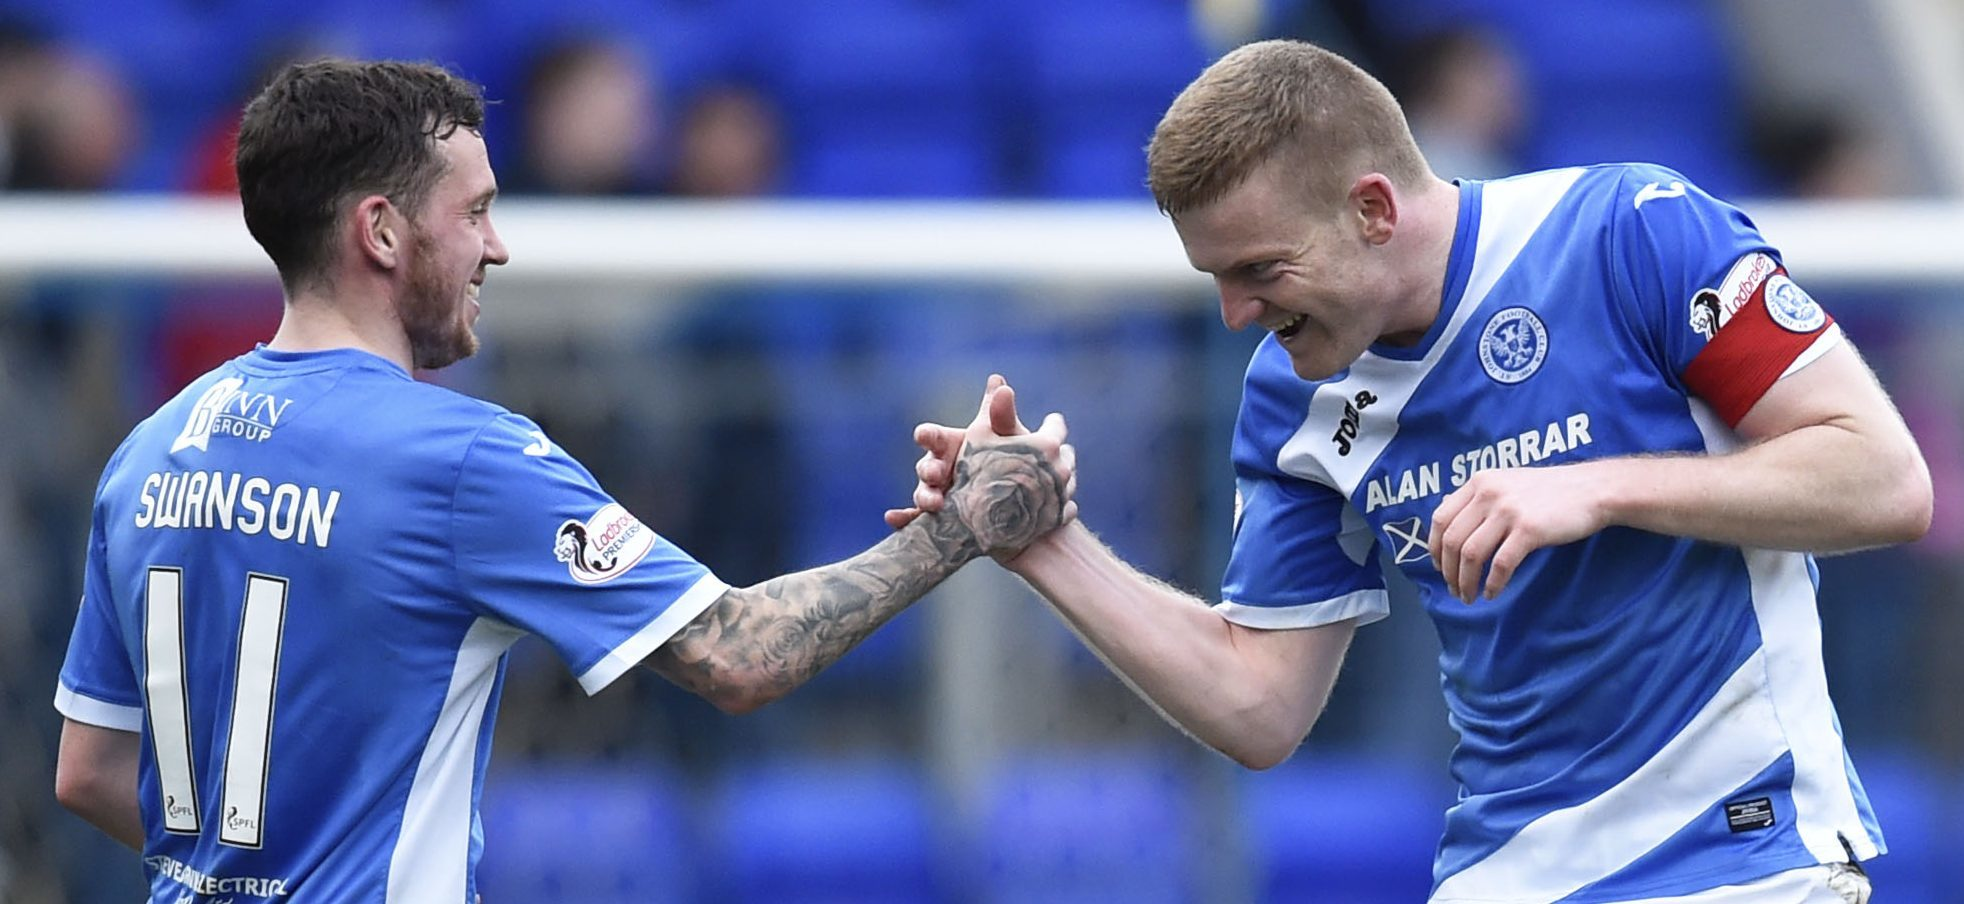 Delight for Saints Danny Swanson, left, and Brian Easton at the final whistle.